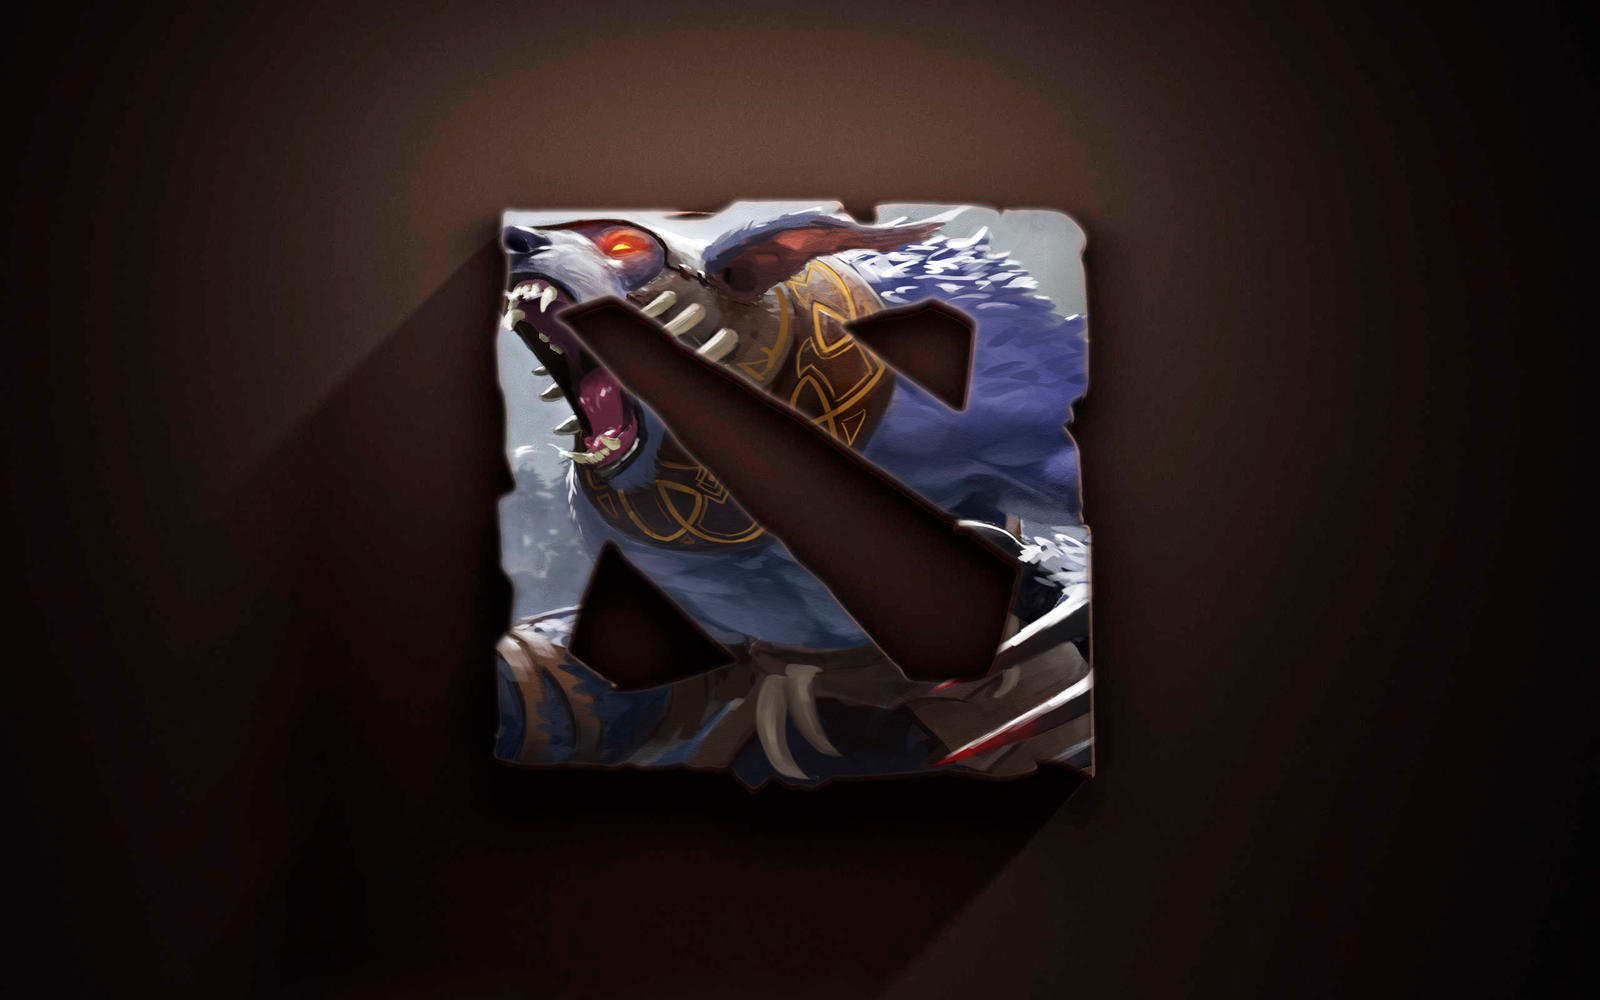 Iphone, Android, Mobile phone wallpapers Обои Dota 2 на